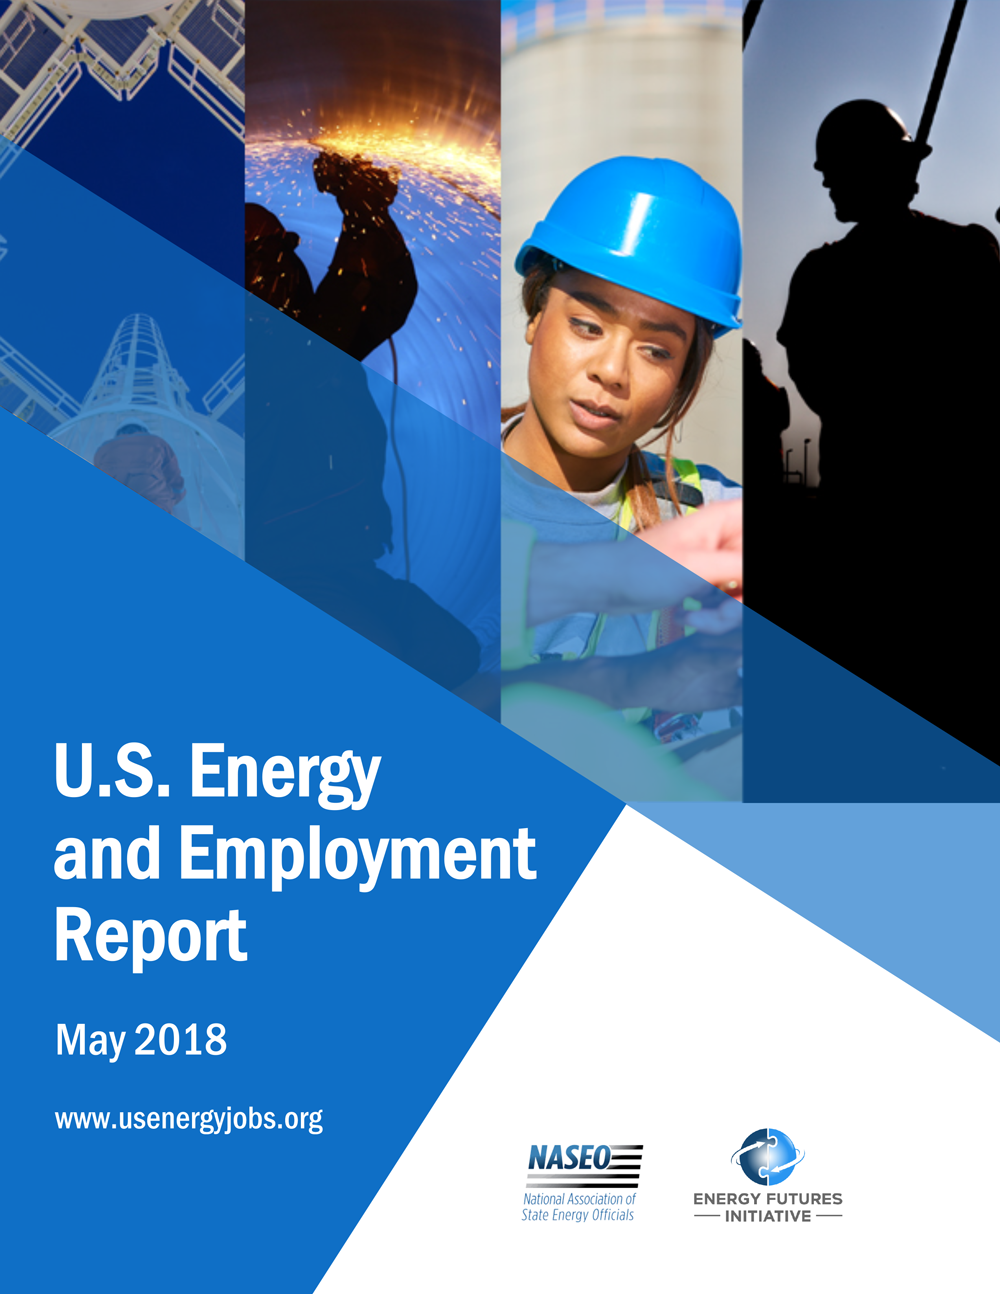 Full 2018 USEER - Download the full report and also the data contained in the 2018 U.S. Energy and Employment Report.Download the report